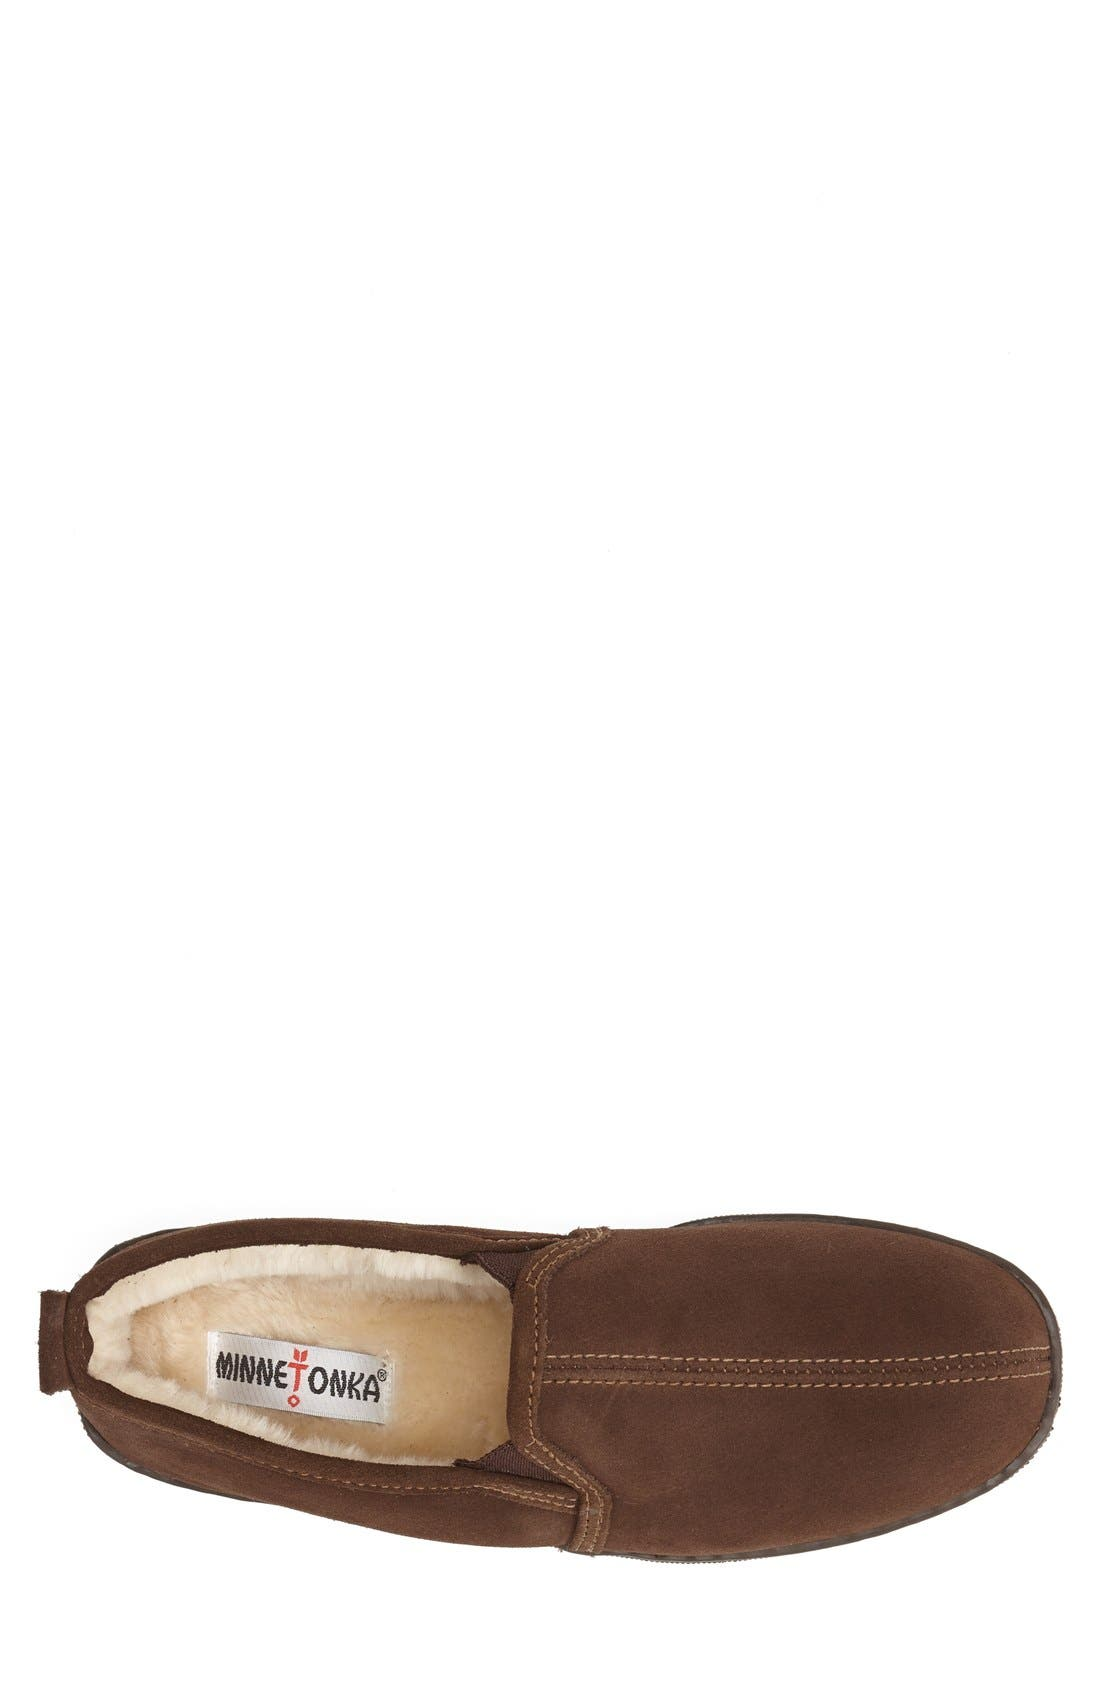 Suede Slipper,                             Alternate thumbnail 3, color,                             CHOCOLATE